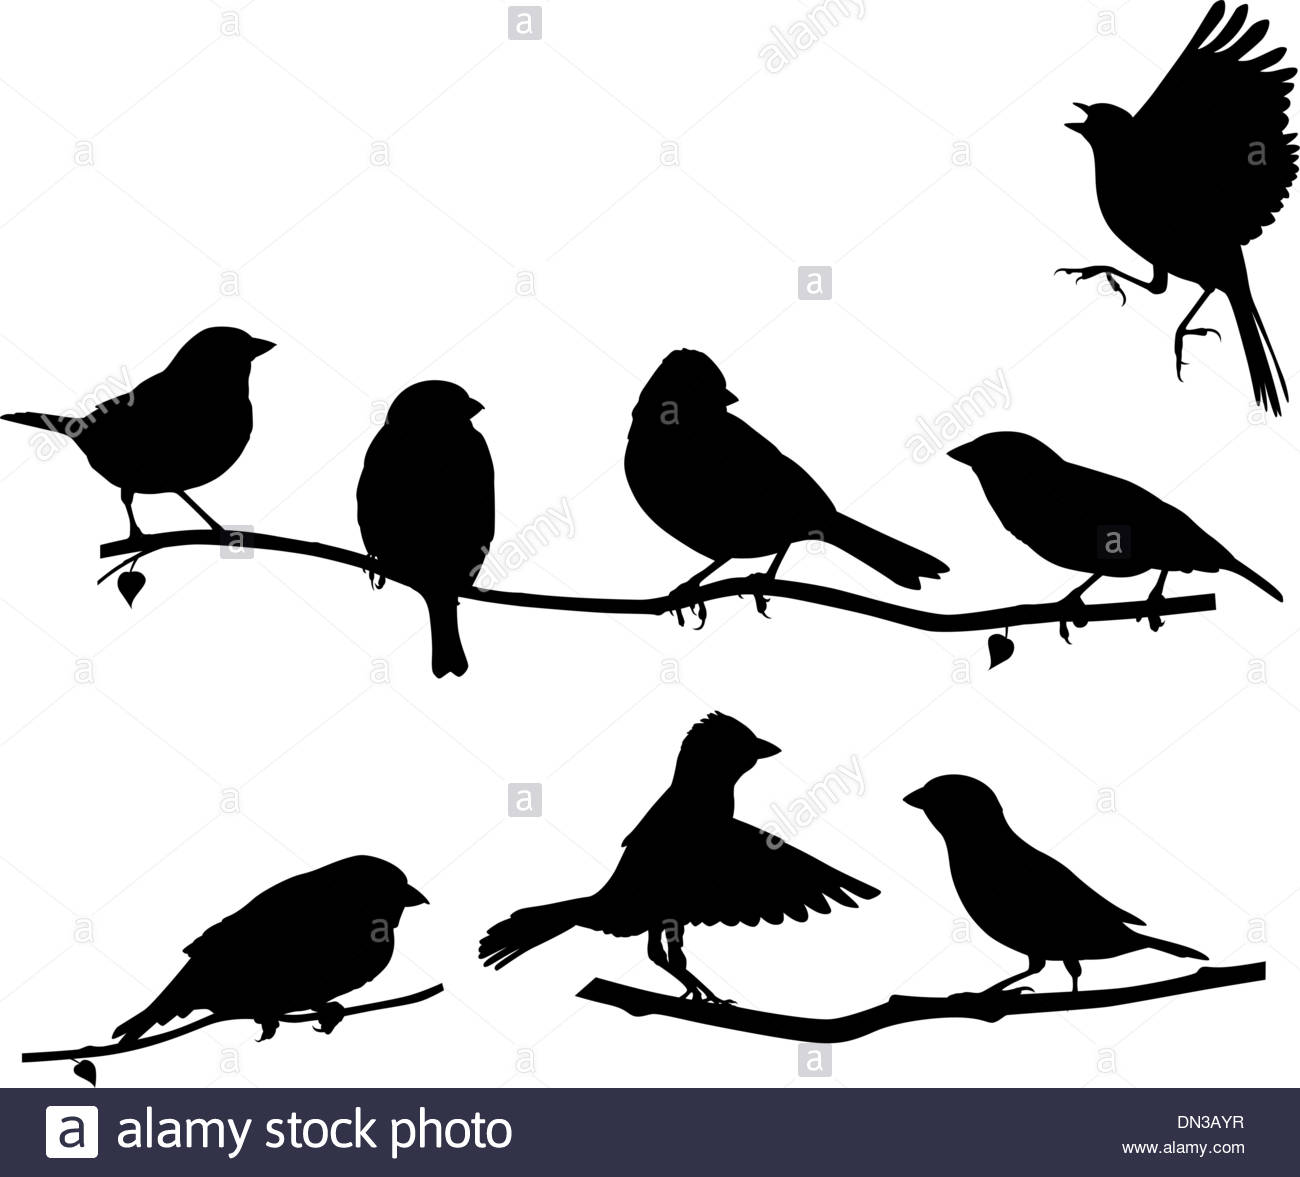 vector silhouette bird on branch stockfotos vector silhouette bird on branch bilder alamy. Black Bedroom Furniture Sets. Home Design Ideas